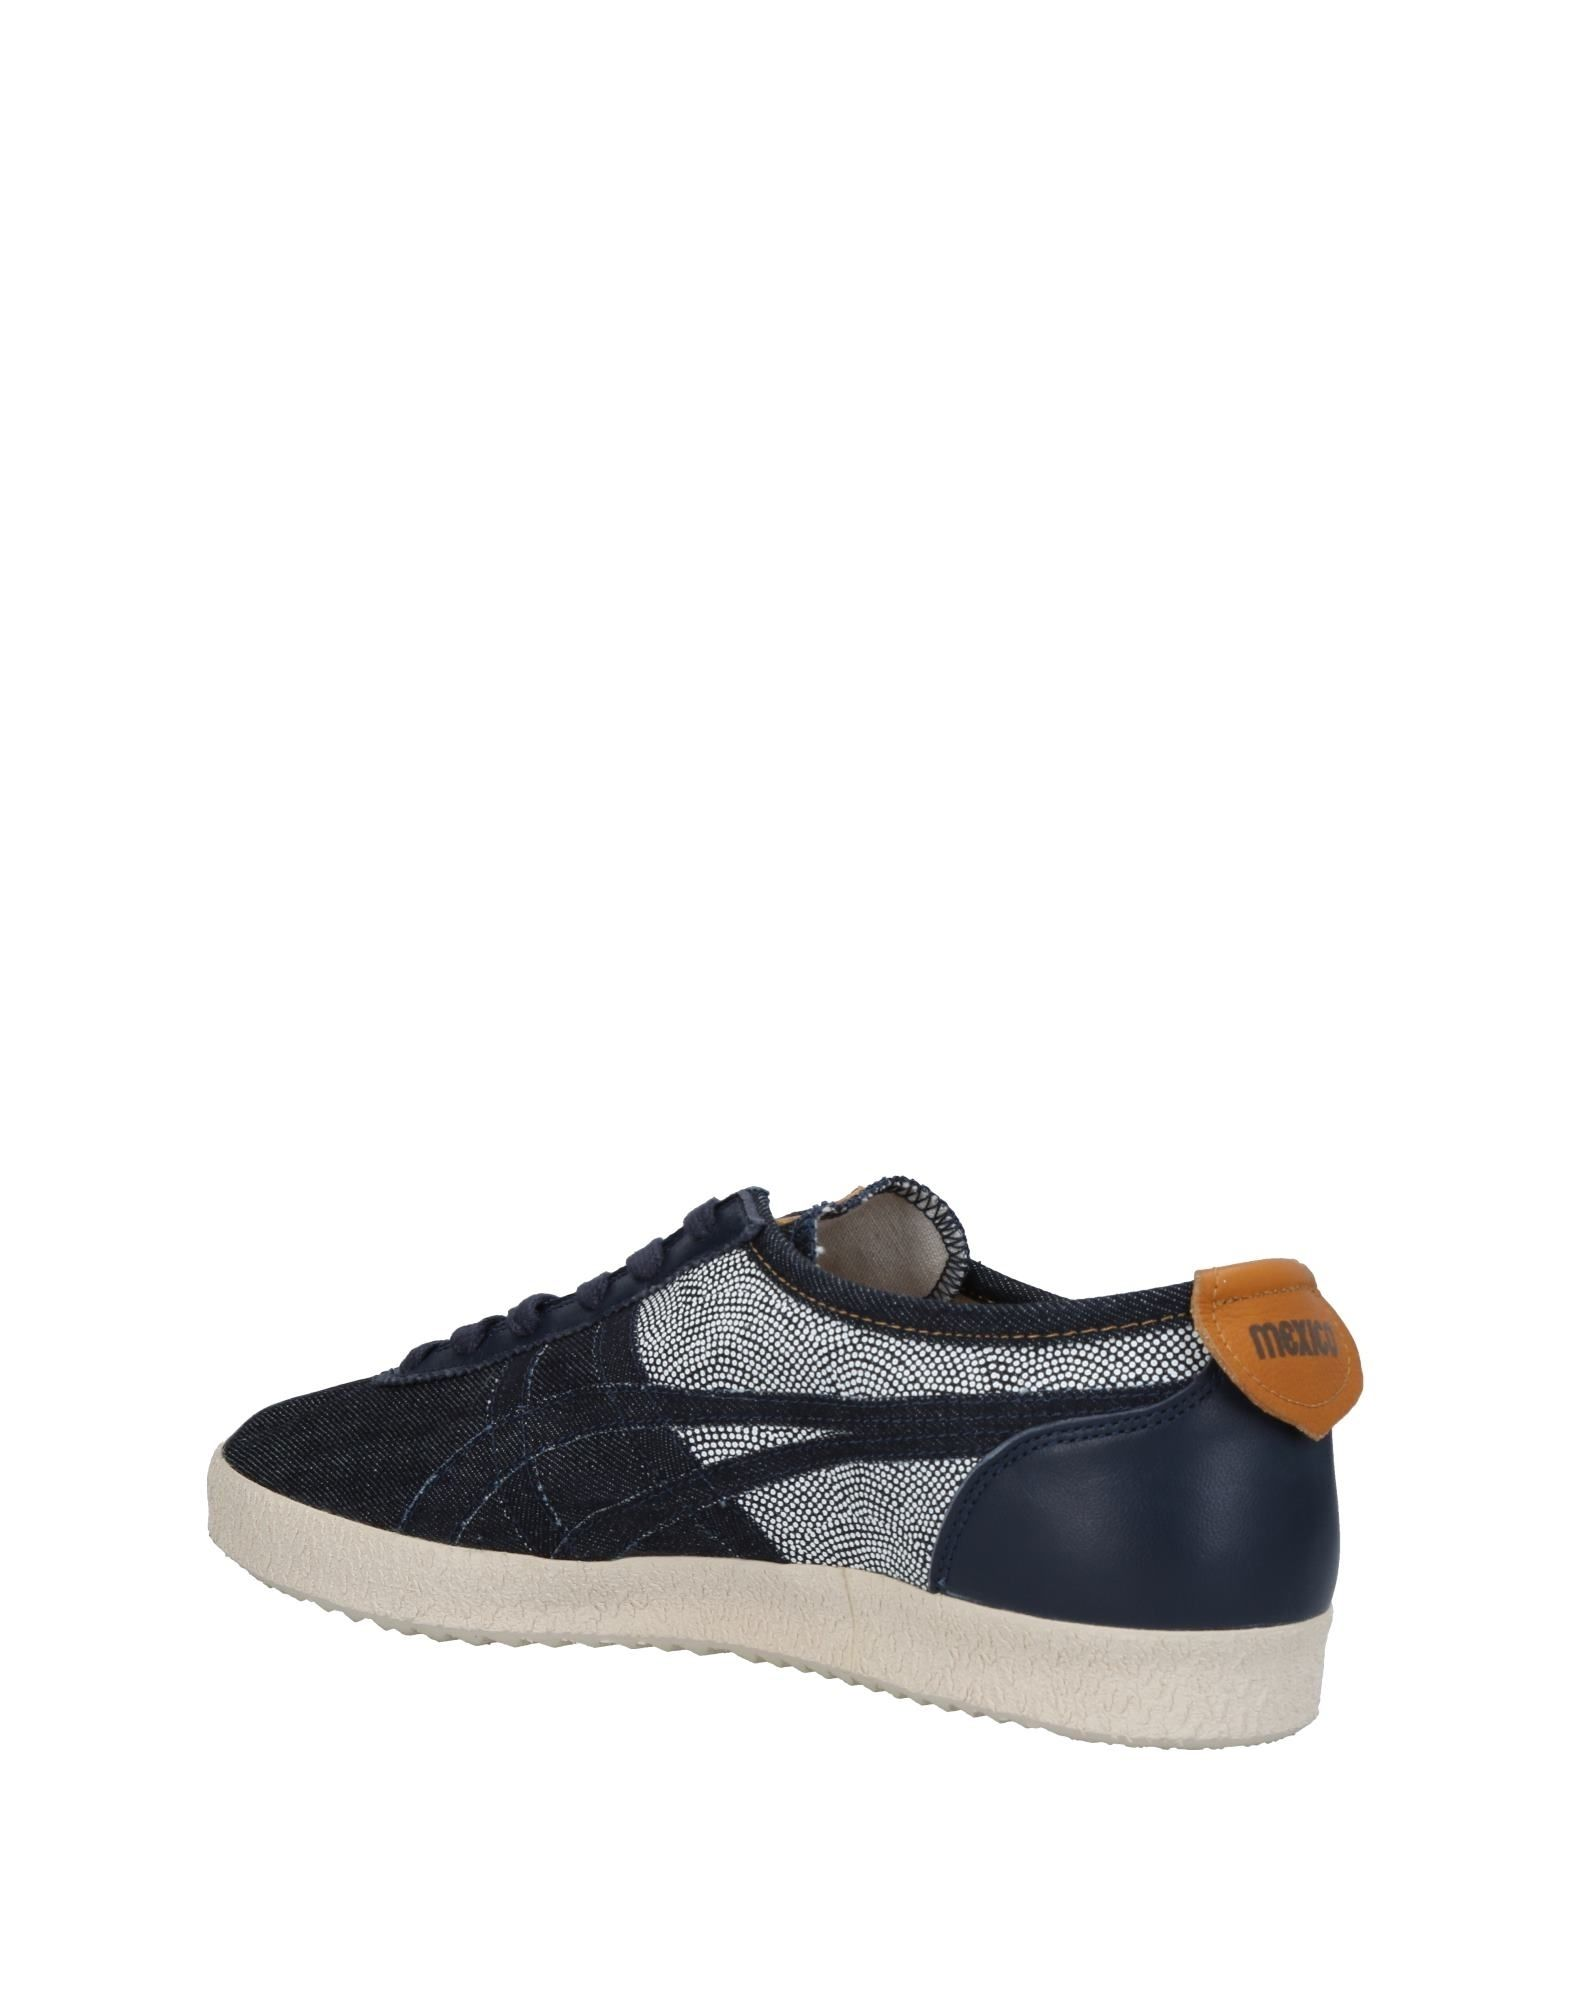 Sneakers Onitsuka Tiger Homme - Sneakers Onitsuka Tiger sur